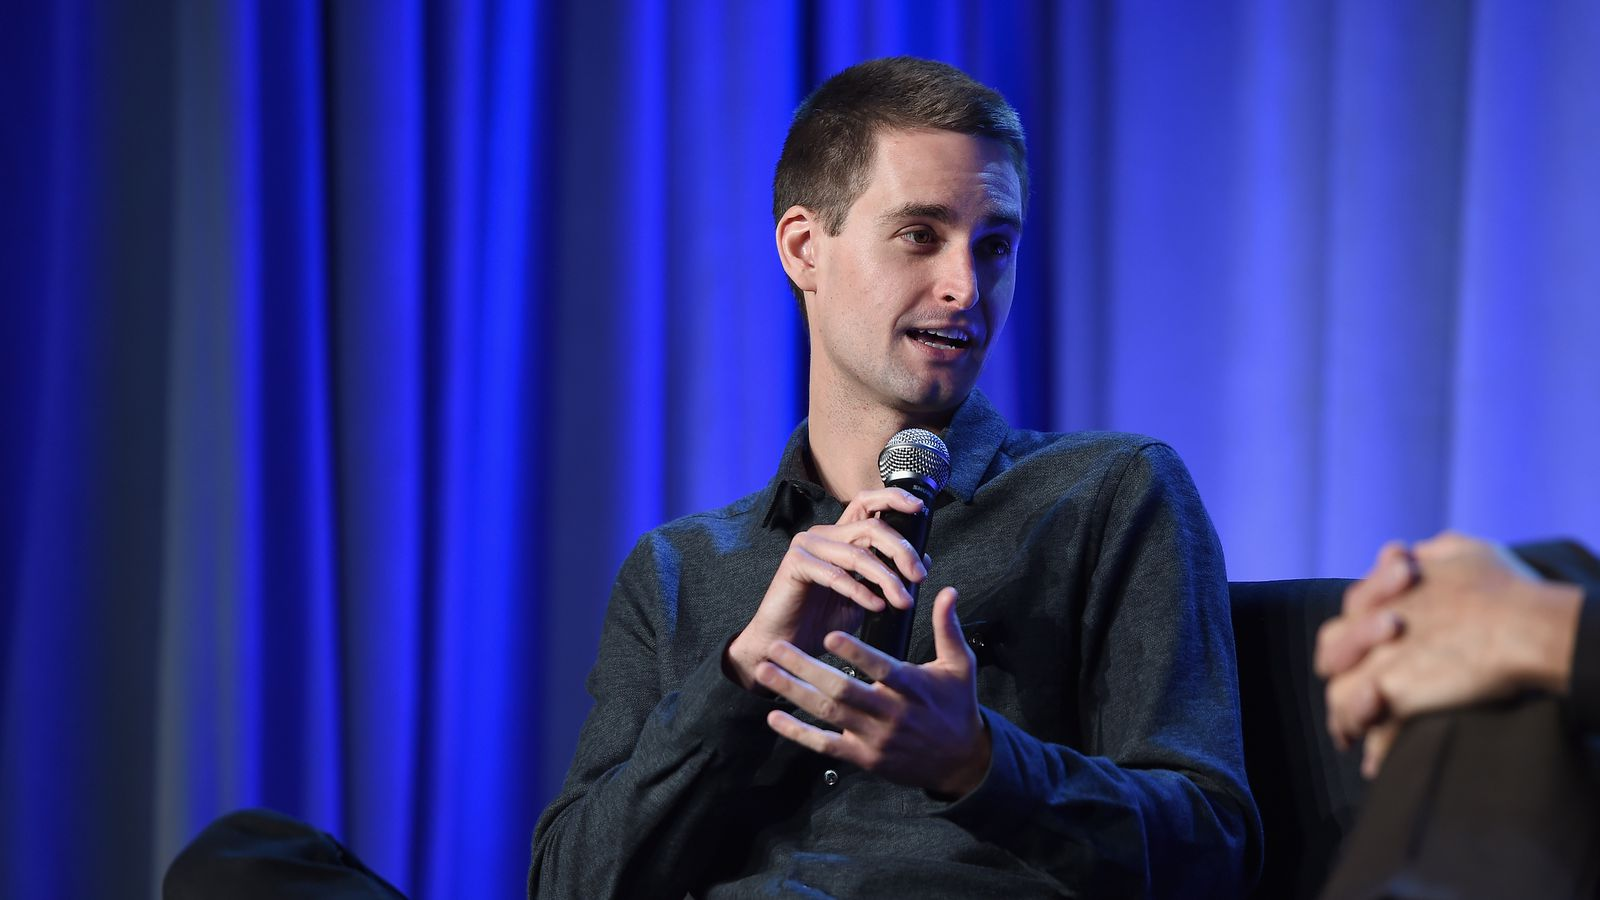 Snap's revenue growth looks like it will come from more ads, not more users